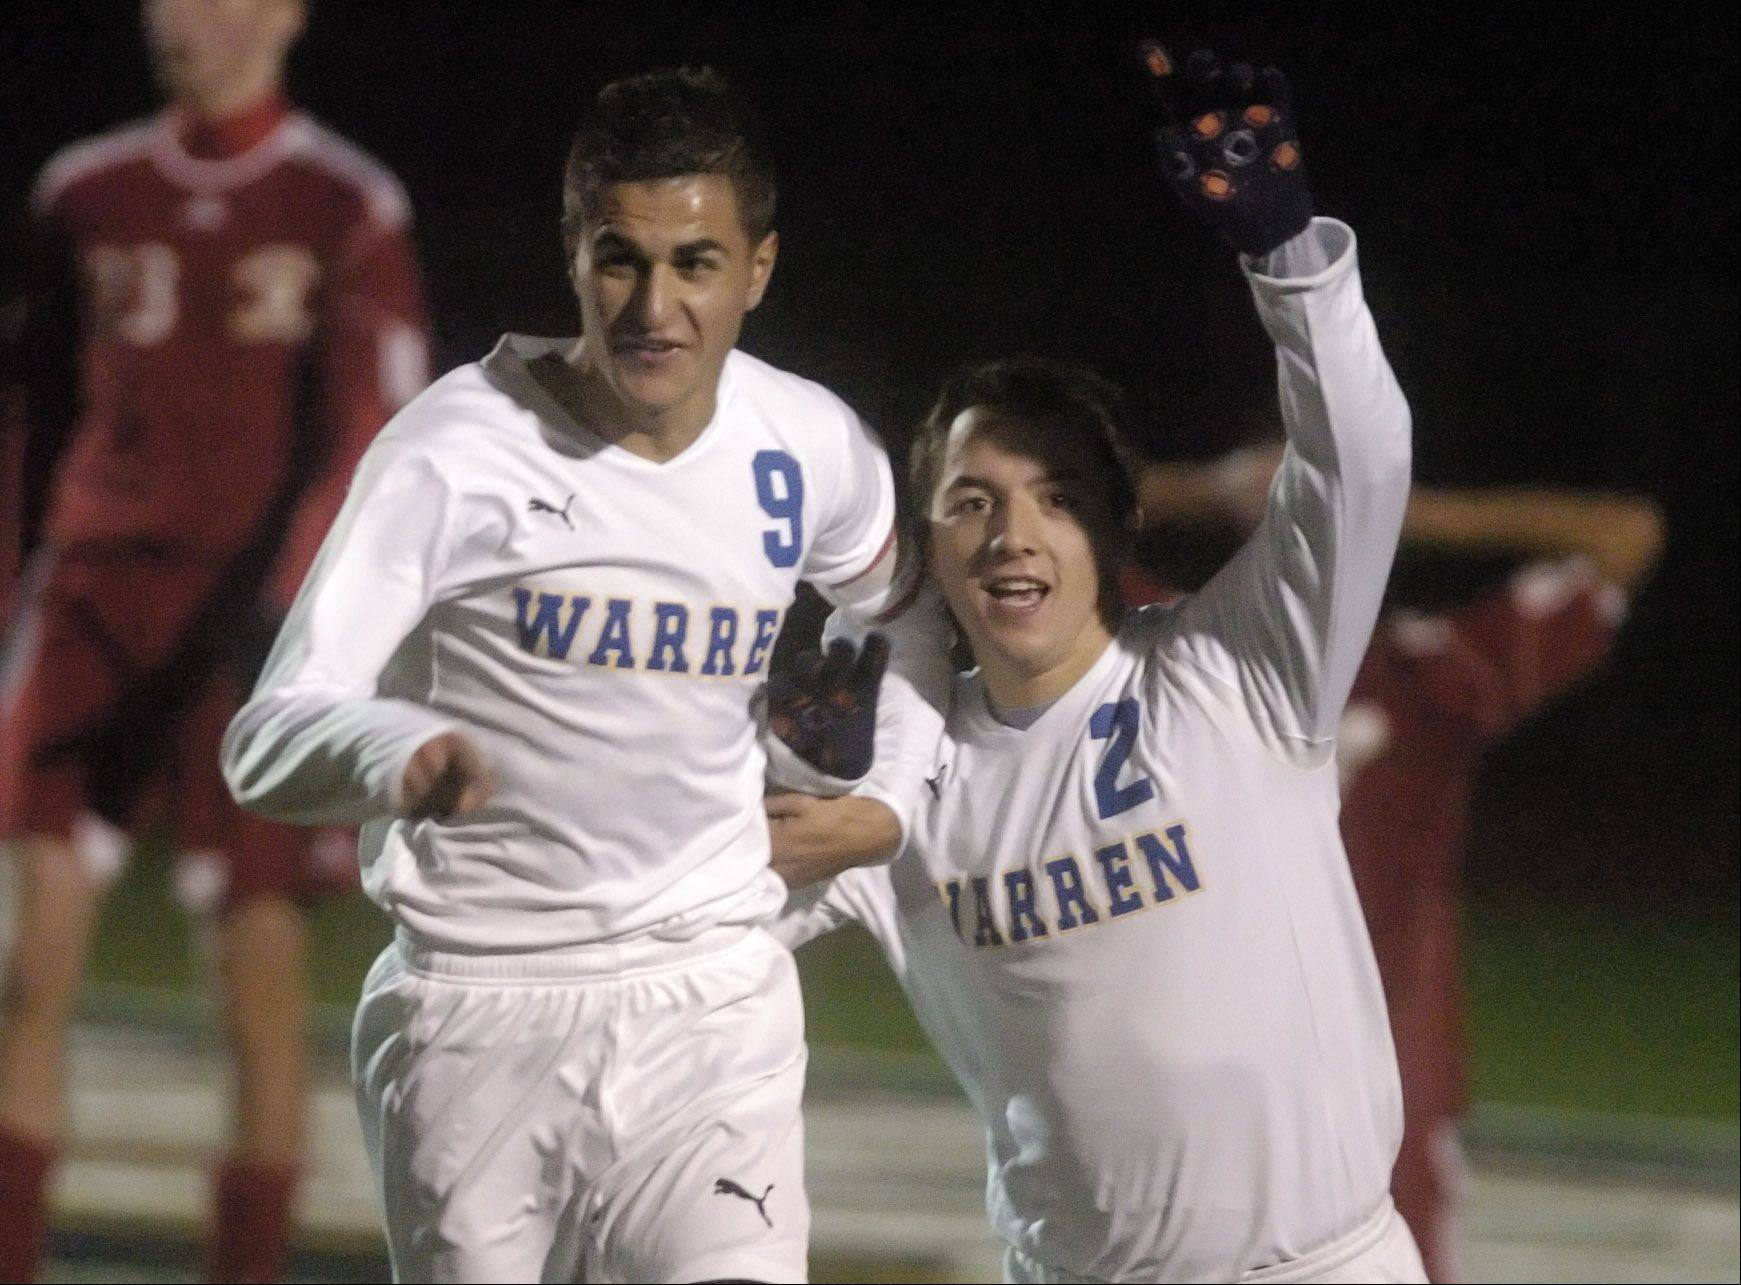 Daniel Szczepanek, left, and Tony Severini of Warren celebrate after a goal during the Blue Devils' championship effort against Naperville Central on Saturday night at Lincoln-Way North.